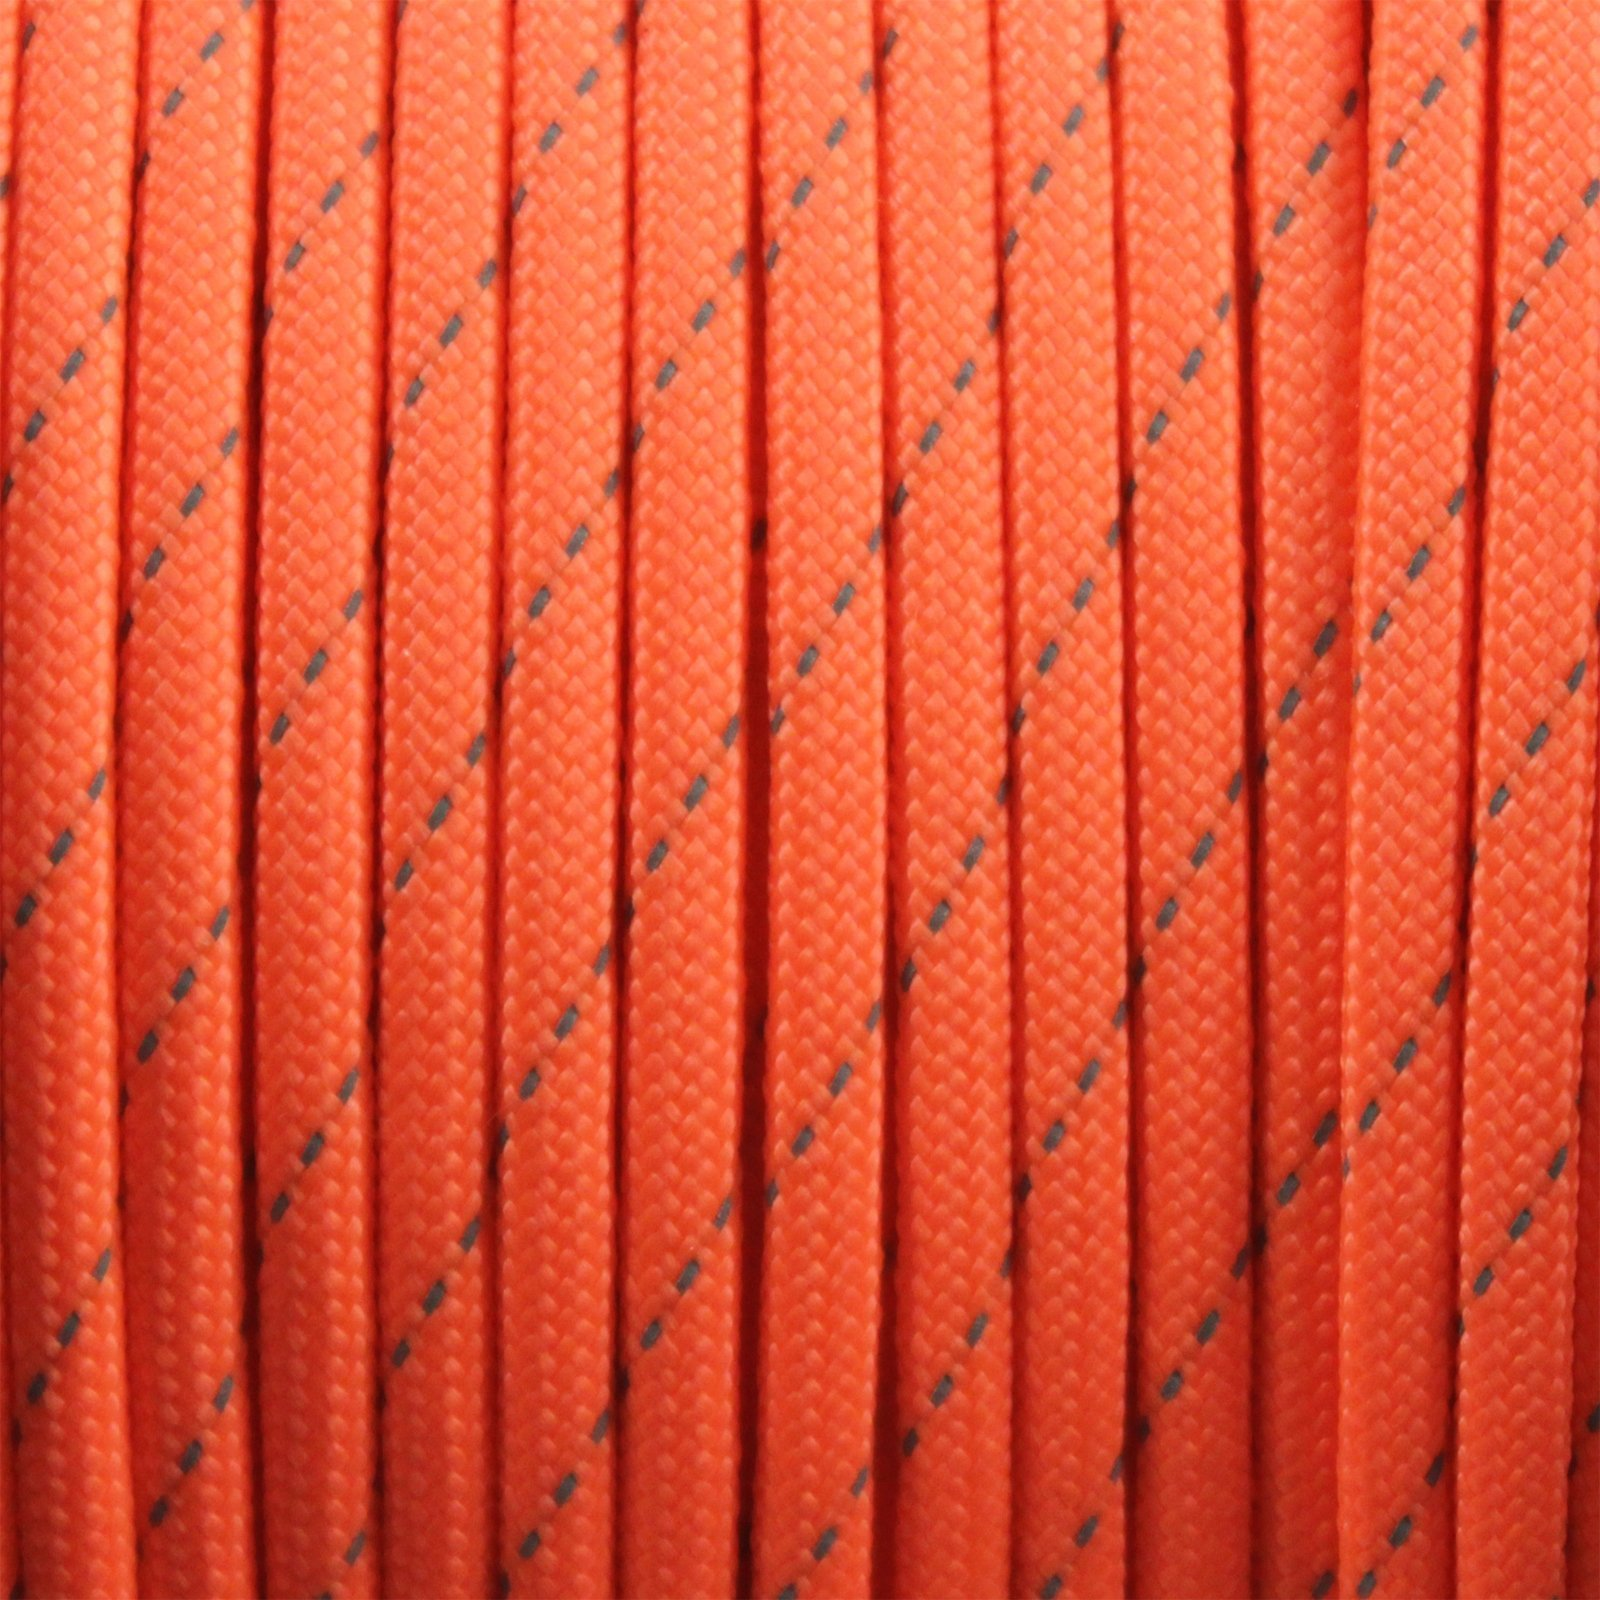 550lbs Strength Survival Paracord Rope Camping Hiking Reflective Orange- 500ft